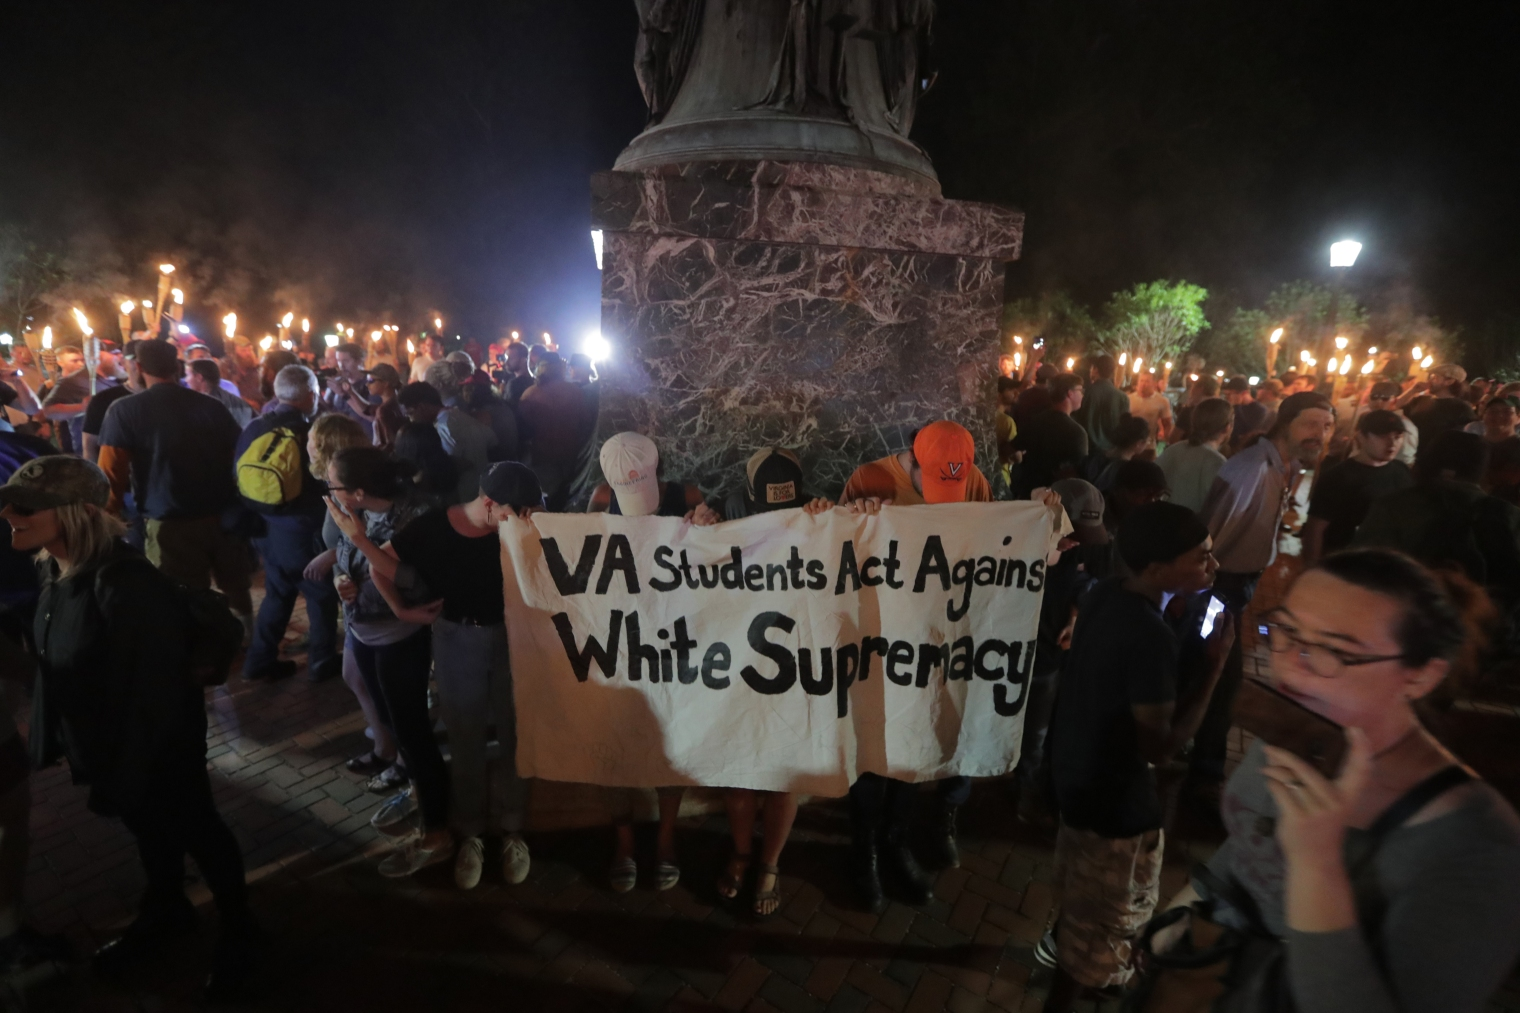 A group of counter-protesters against the white nationalists who gathered on the University of Virginia campus stand at the base of a Thomas Jefferson statue in Charlottesville, Va., on Aug. 11, 2017.